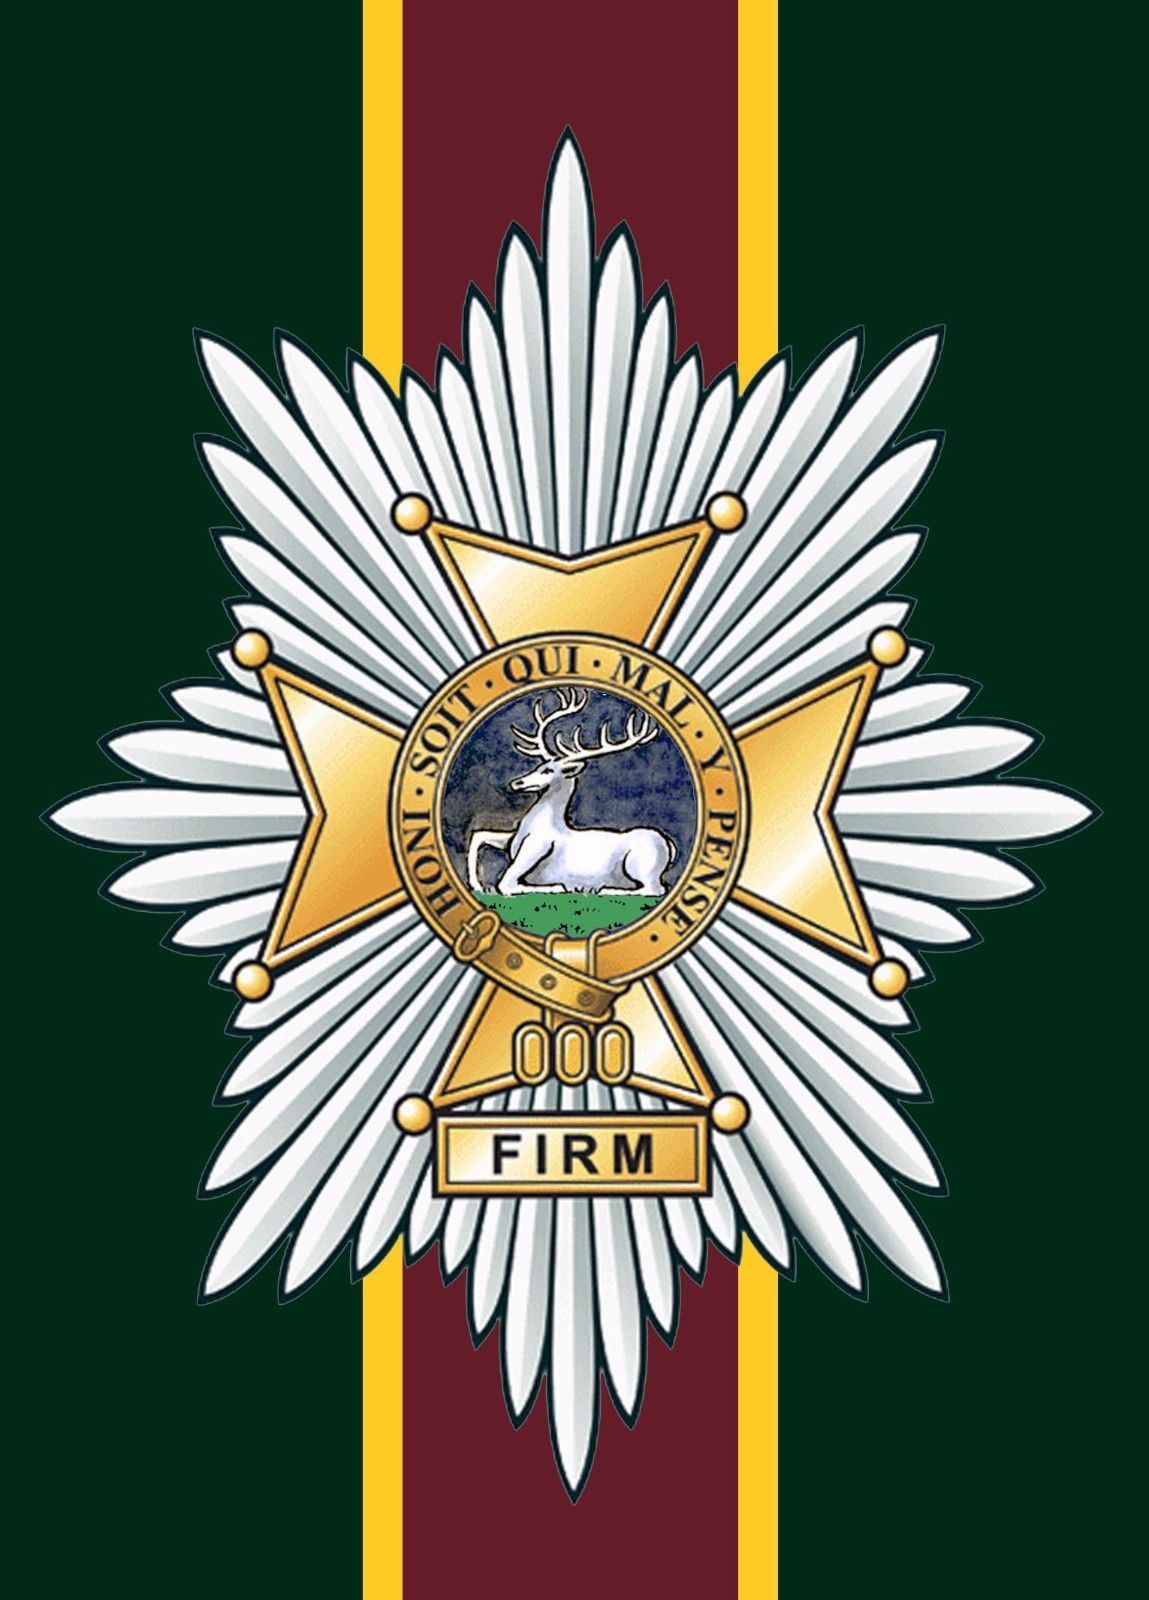 4th Battalion, The Worcestershire and Sherwood Foresters